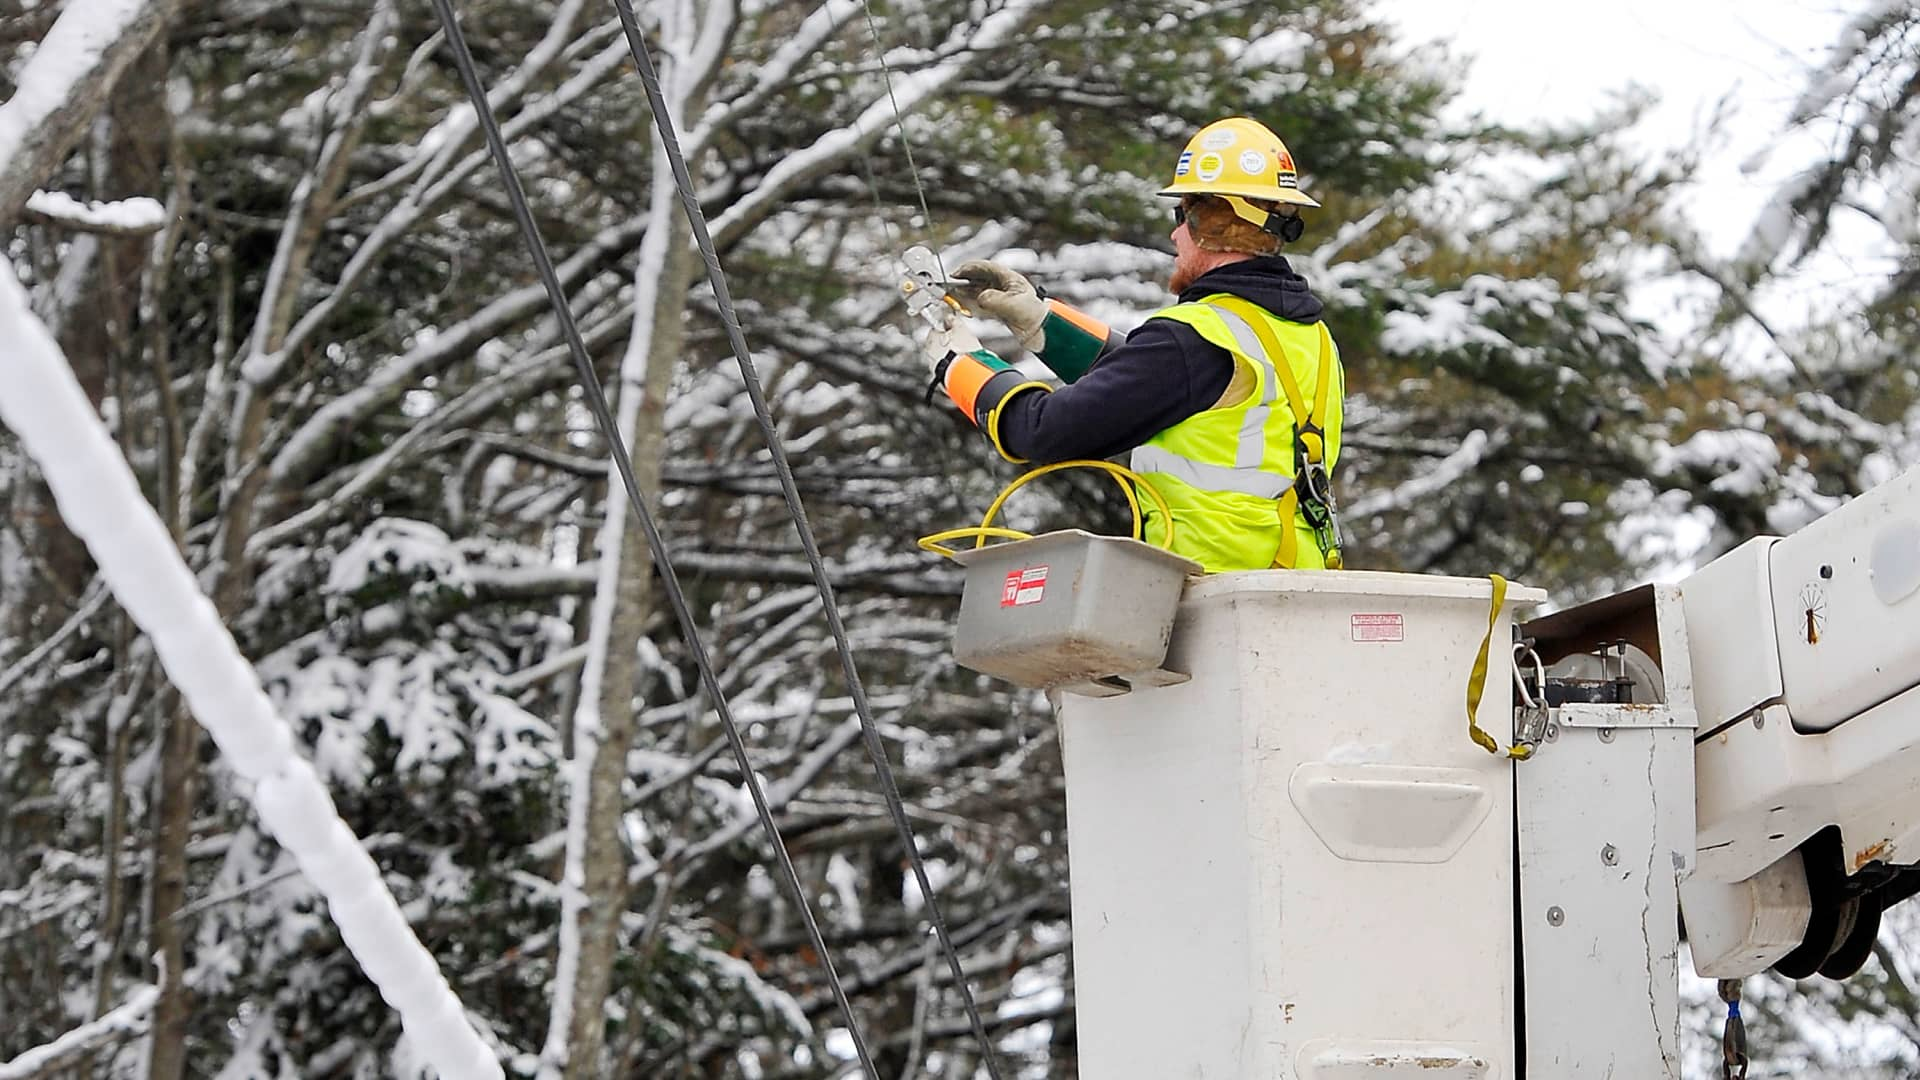 A line worker for Evergreen Electric, applies protective grounds to lines to protect other electrical workers who are repairing nearby lines in Harpswell, Maine.